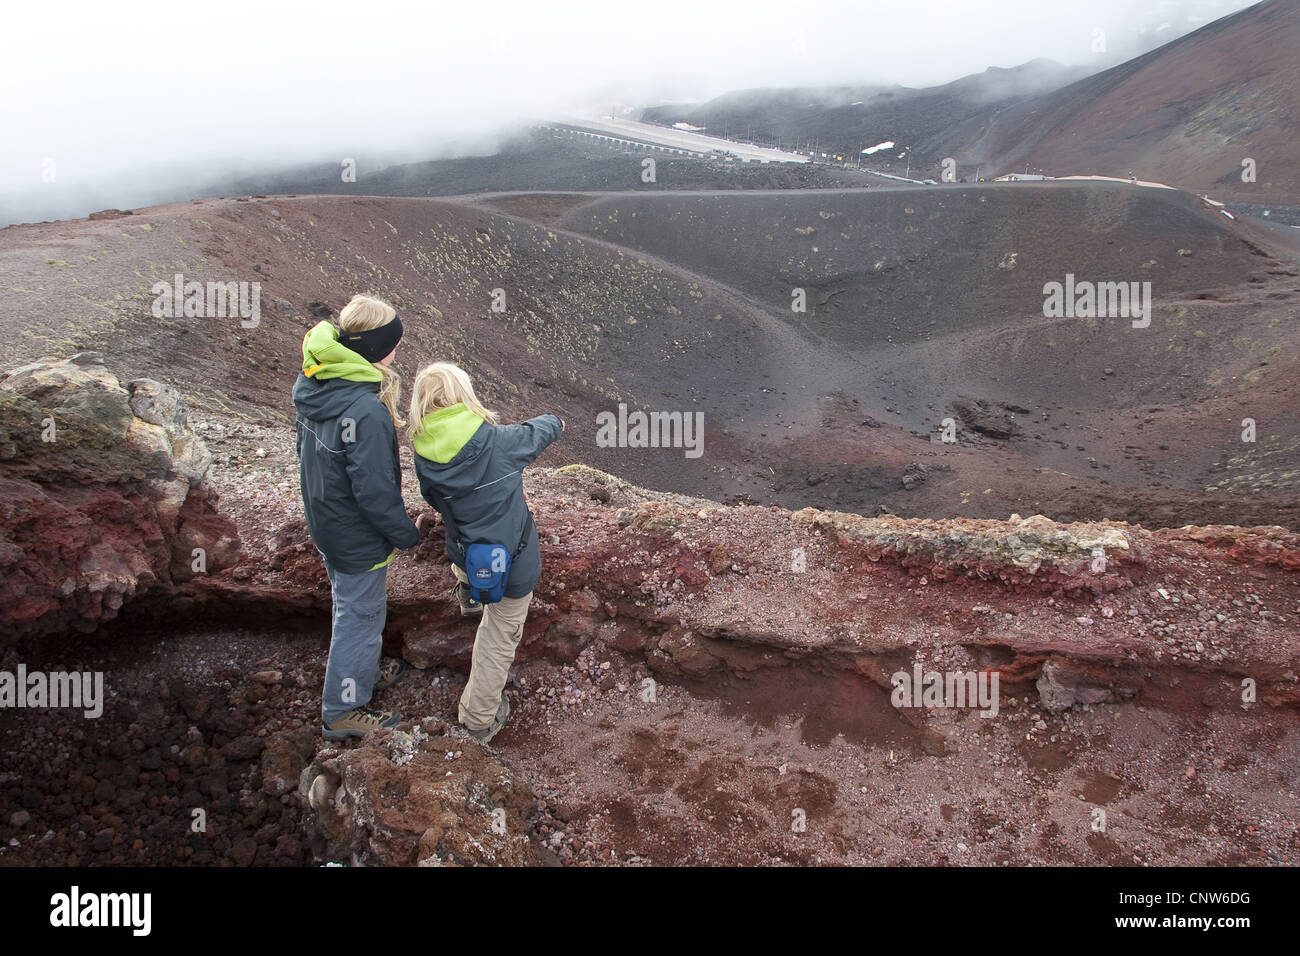 children standing at a volcanic crater of Mount Etna, Italy, Sicilia - Stock Image